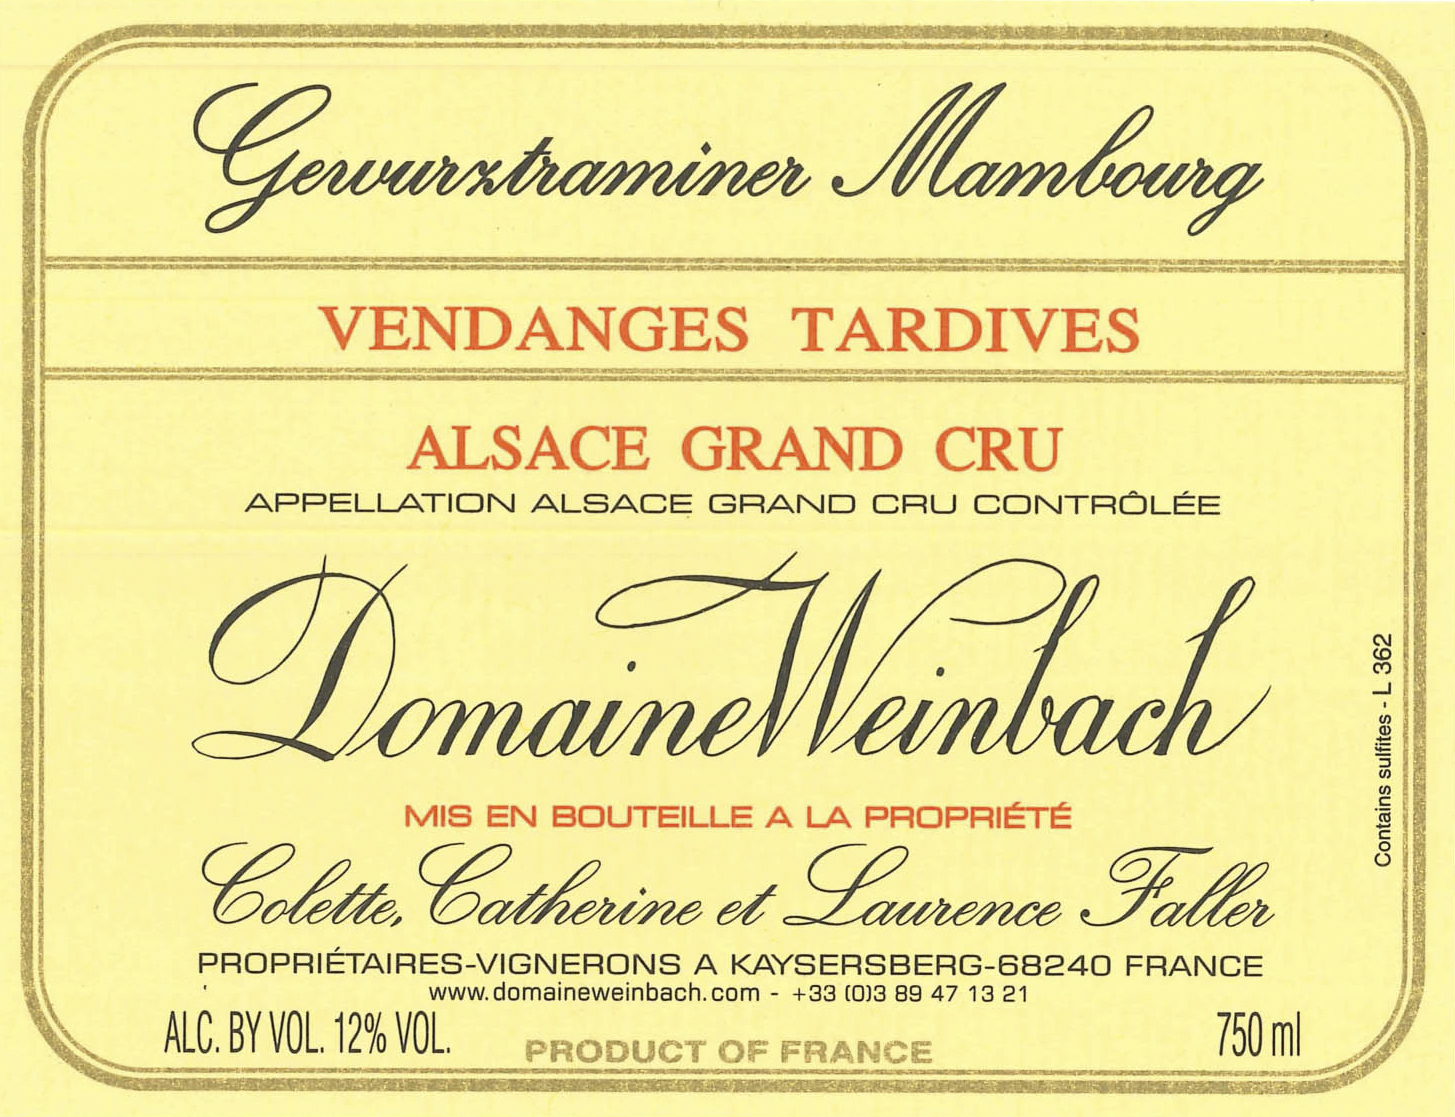 Weinbach Gewurztraminer Mambourg Vendanges Tardives Grand Cru Label.jpg